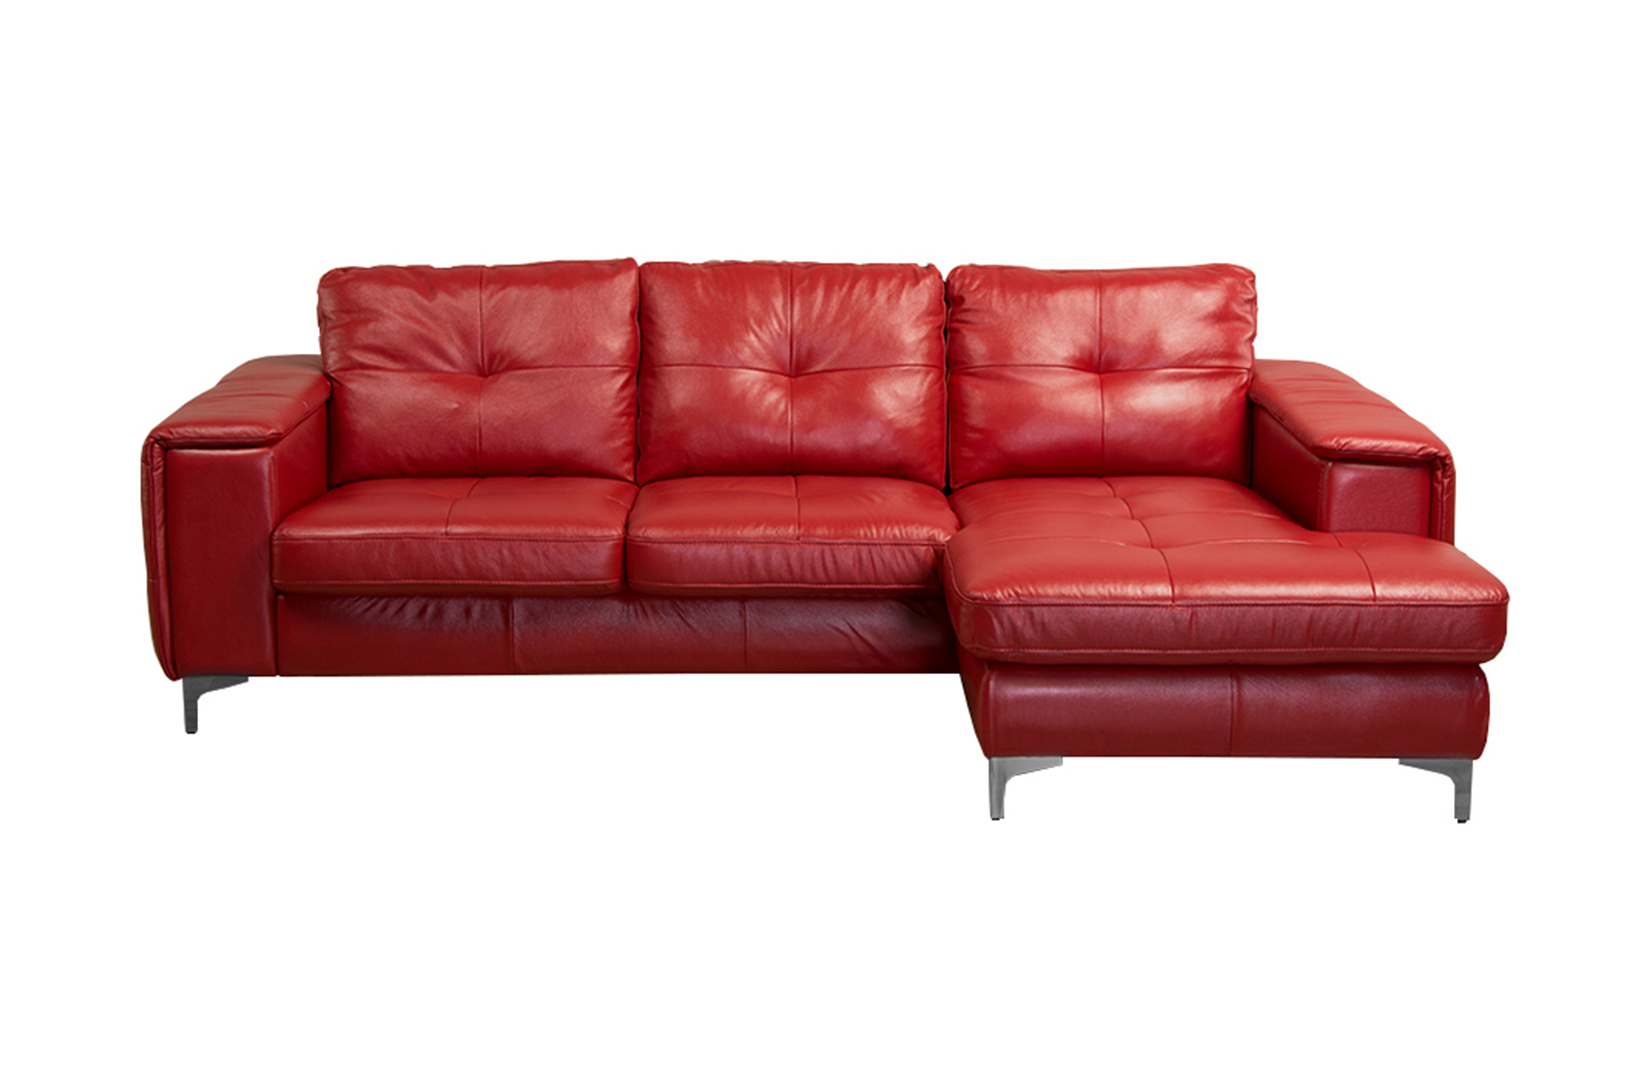 Frankfurt Sectional Left Arm Chaise Facing Red Leather